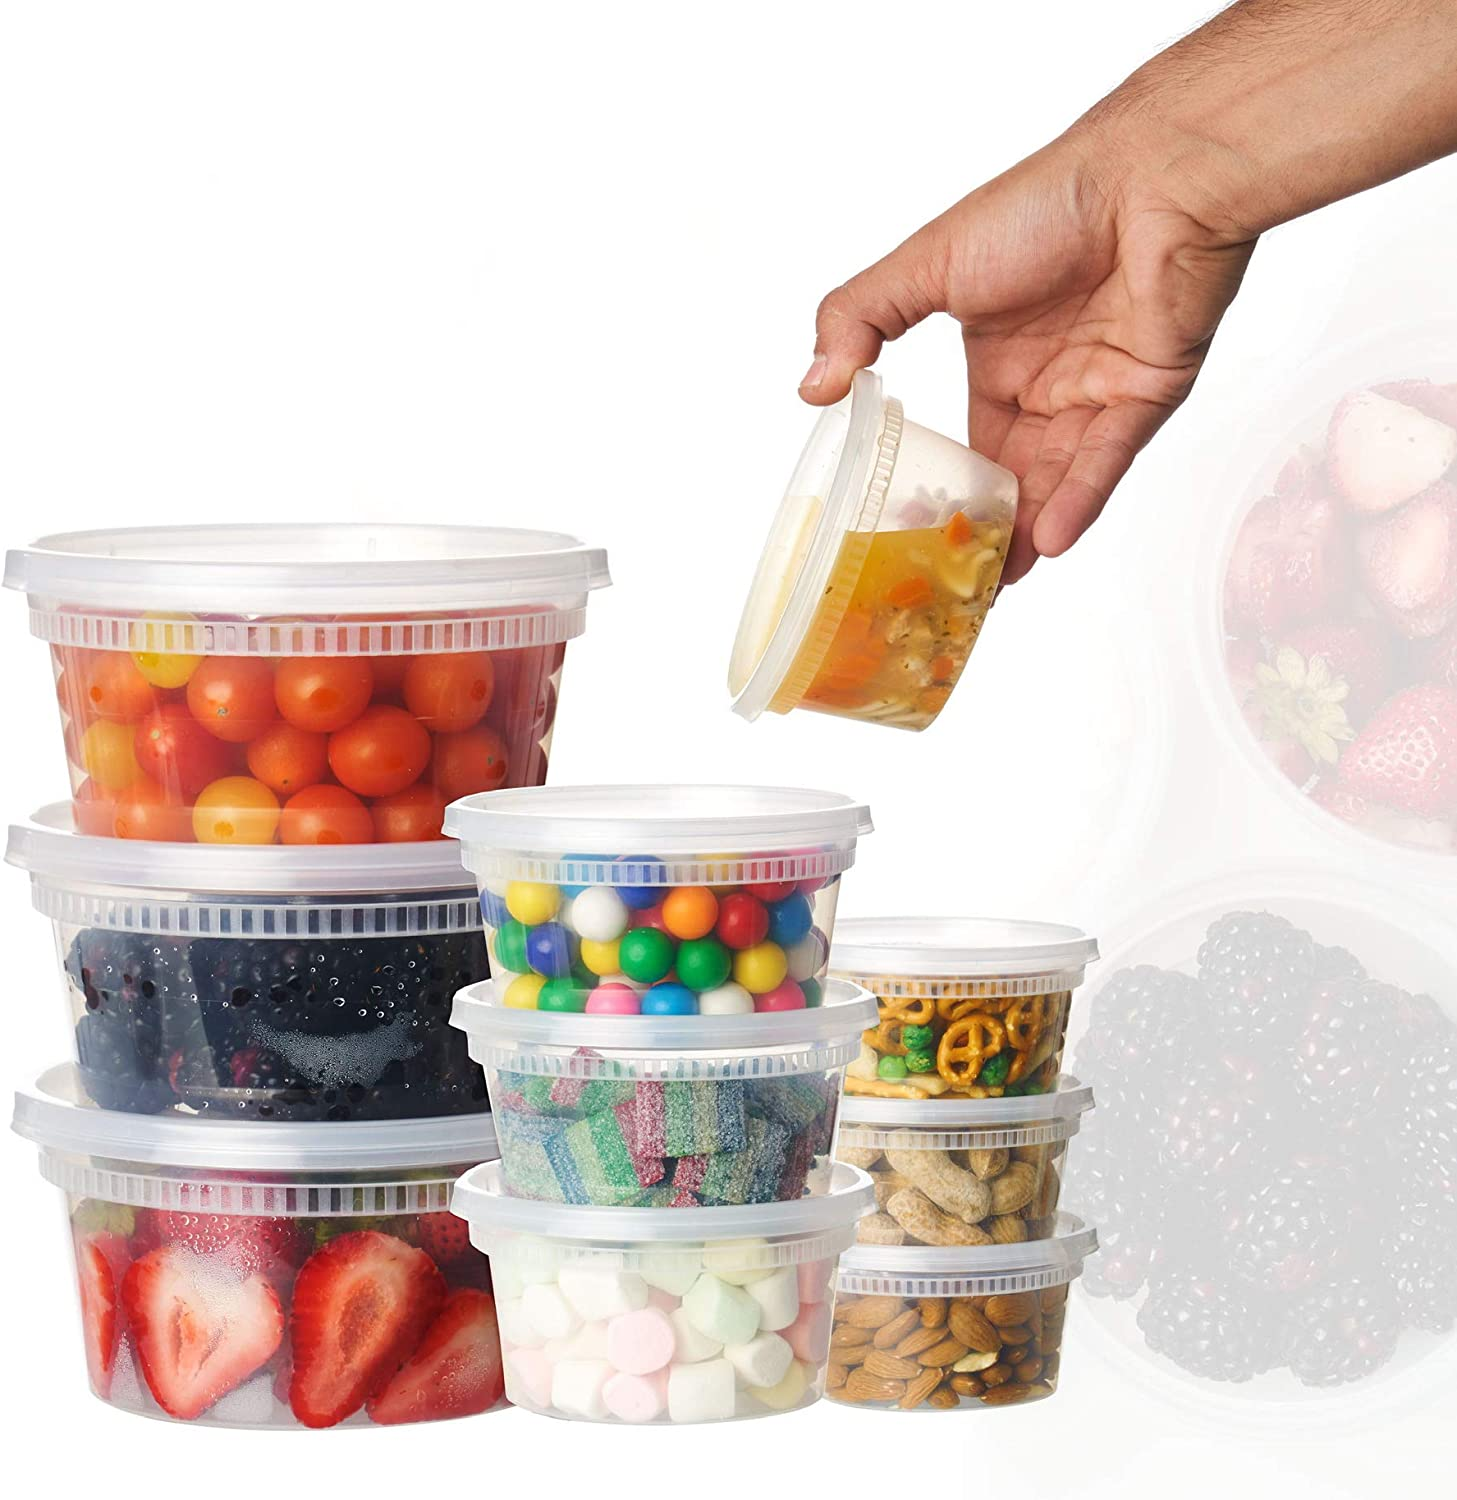 8oz-12sets Plastic Food Storage Containers with Lids, Microwavable Translucent Plastic Deli Container and Lid Combo Pack (8oz)